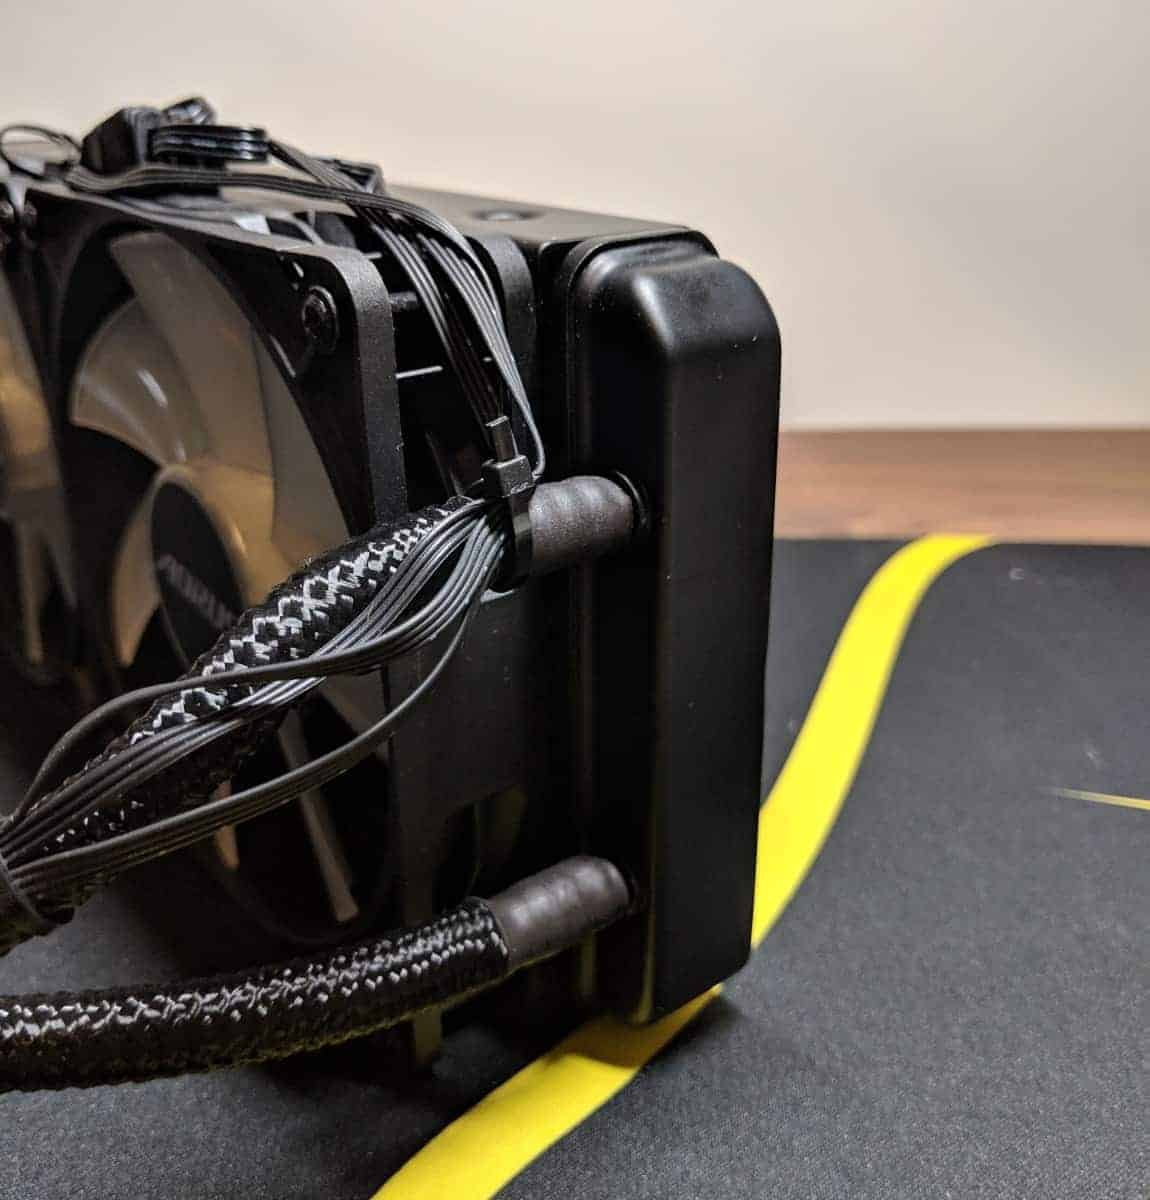 Gigabyte-2080-Xtreme-Waterforce-Photos-15 Gigabyte AORUS RTX 2080 Xtreme Waterforce Review